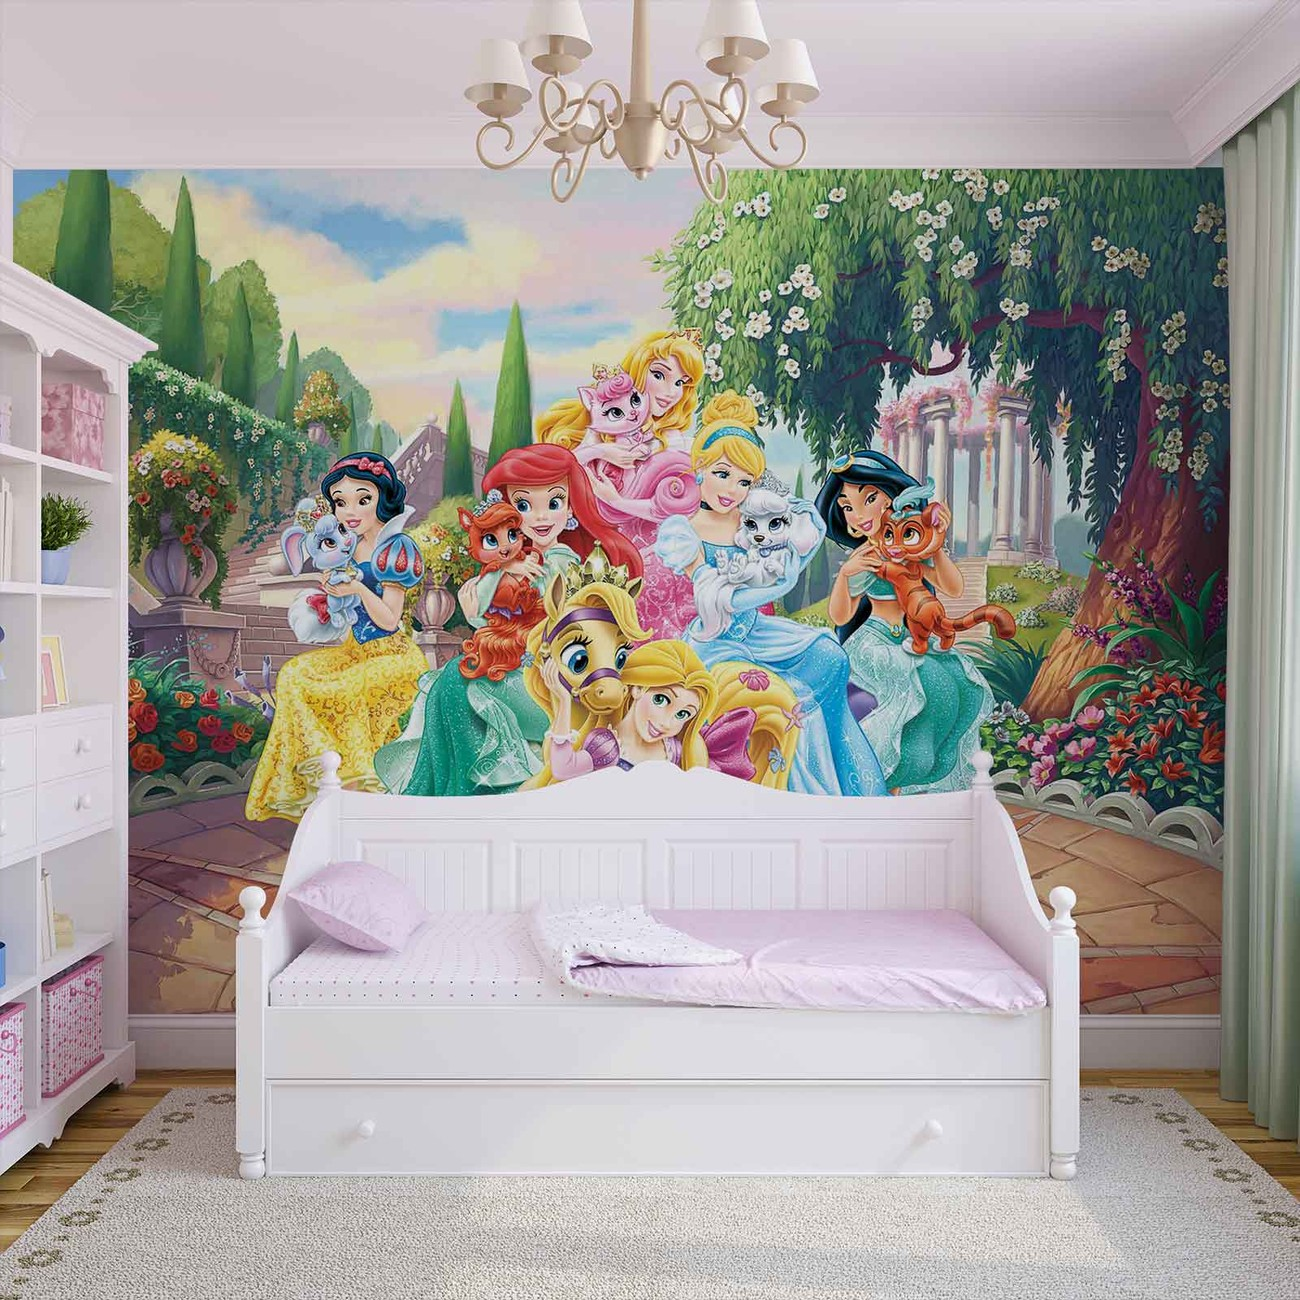 Disney princesses rapunzel ariel wall paper mural buy at for Ariel wall mural